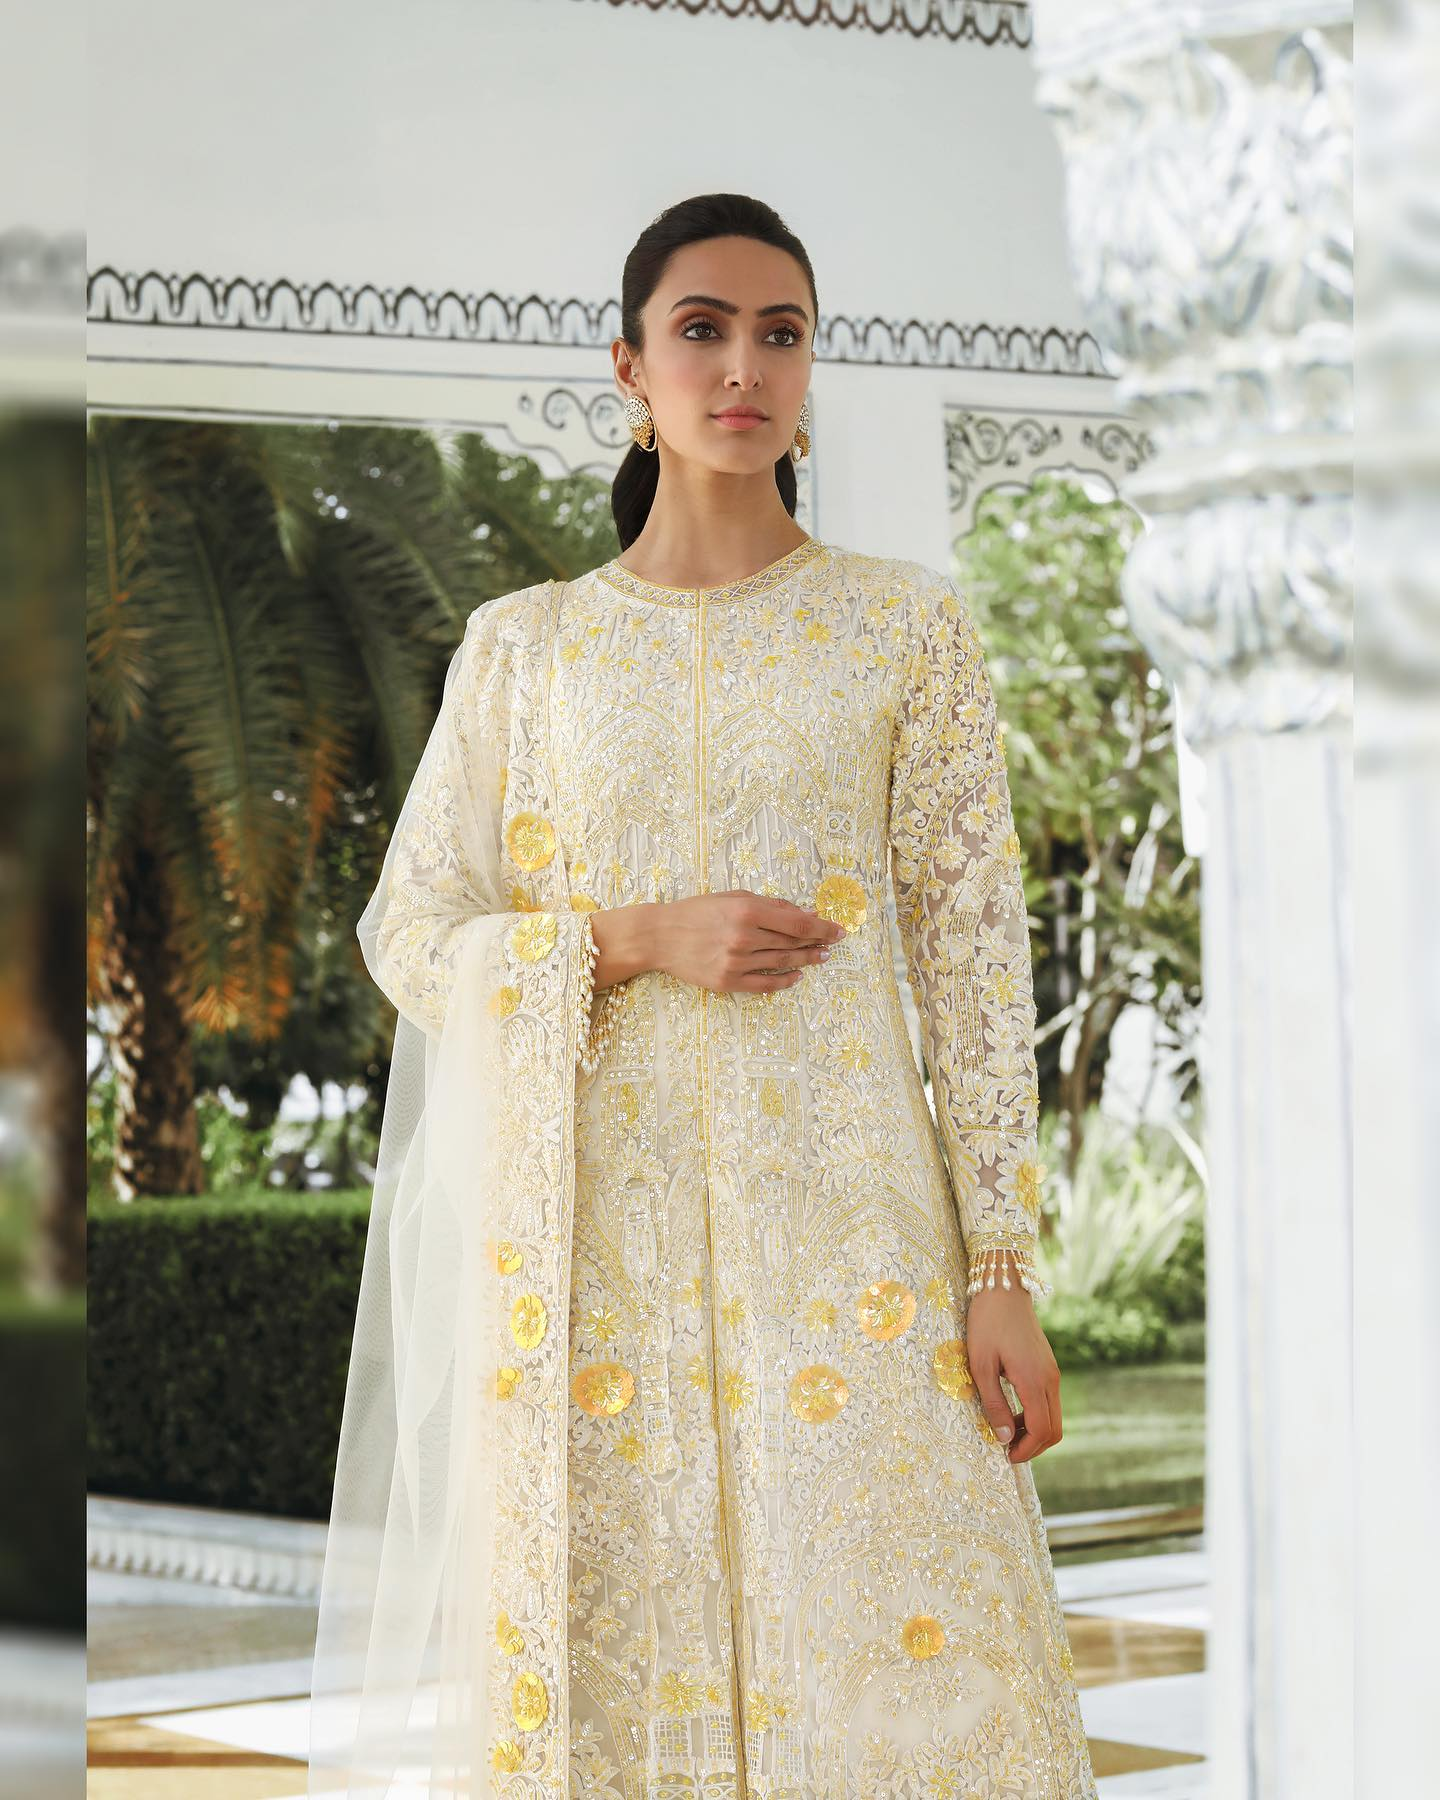 She chased the sun till it shone brightly in Manish Malhotra Kashmiri embroidered ensemble highlighted with sprinkles of holographic yellow sequins and beads accompanied by scalloped palazzo's! 2021-04-08